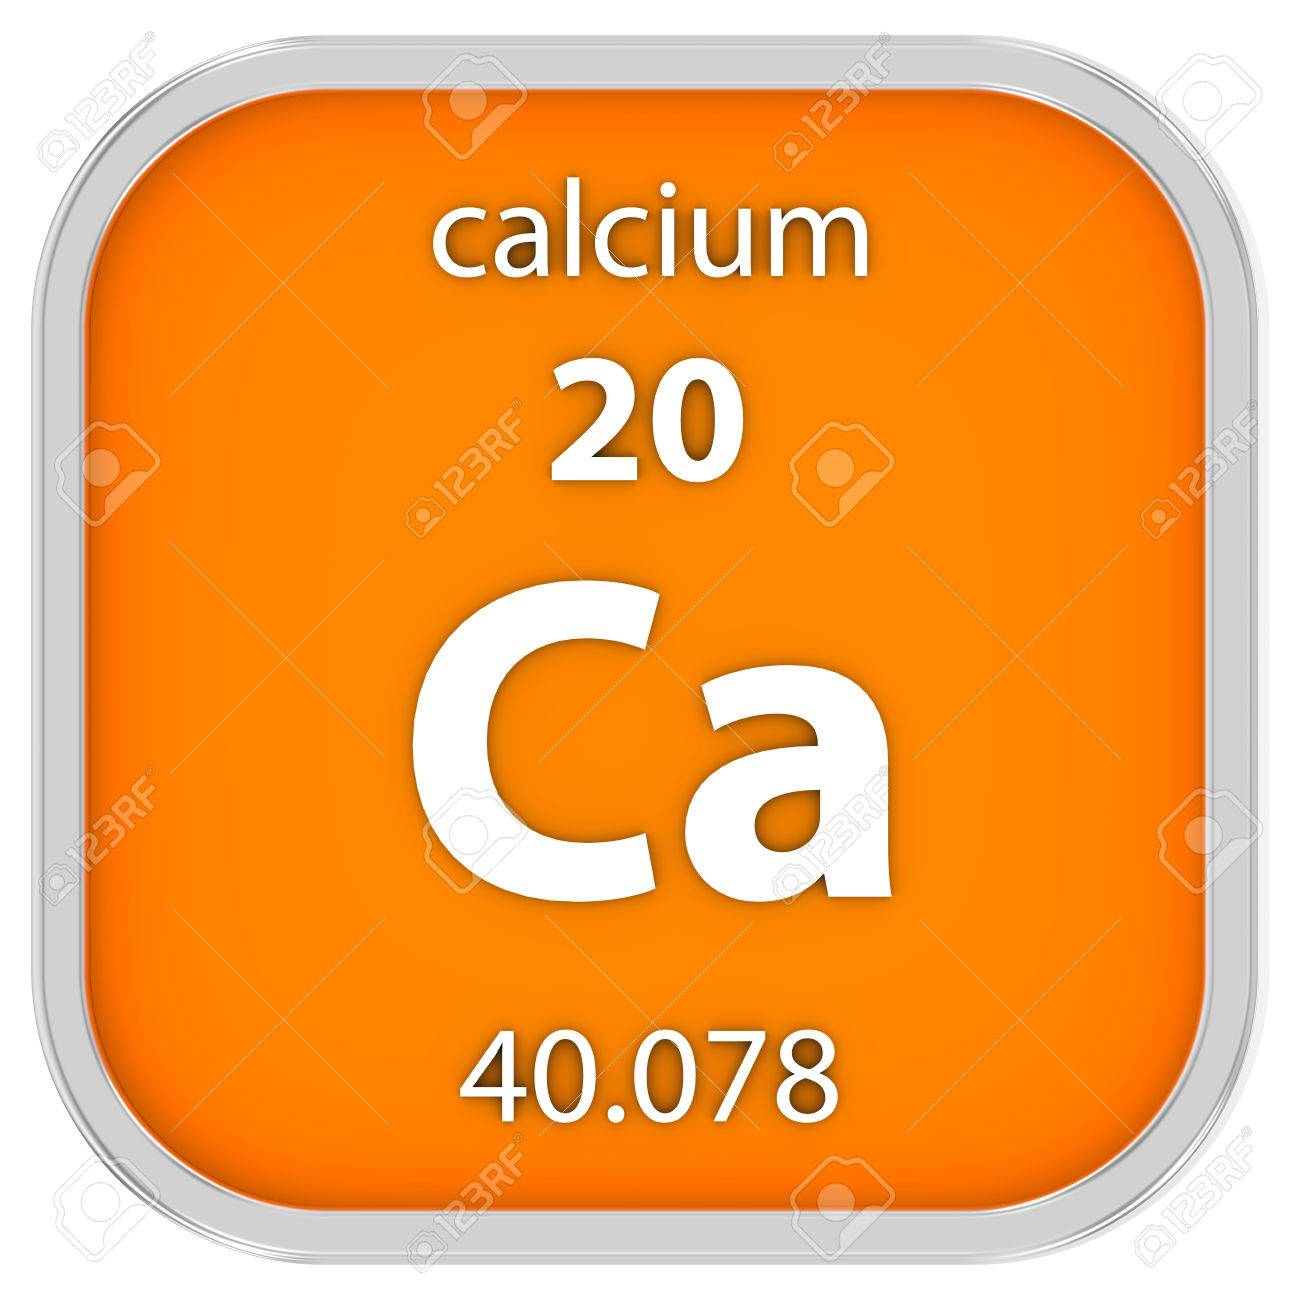 Calcium Material On The Periodic Table Part Of A Series Stock